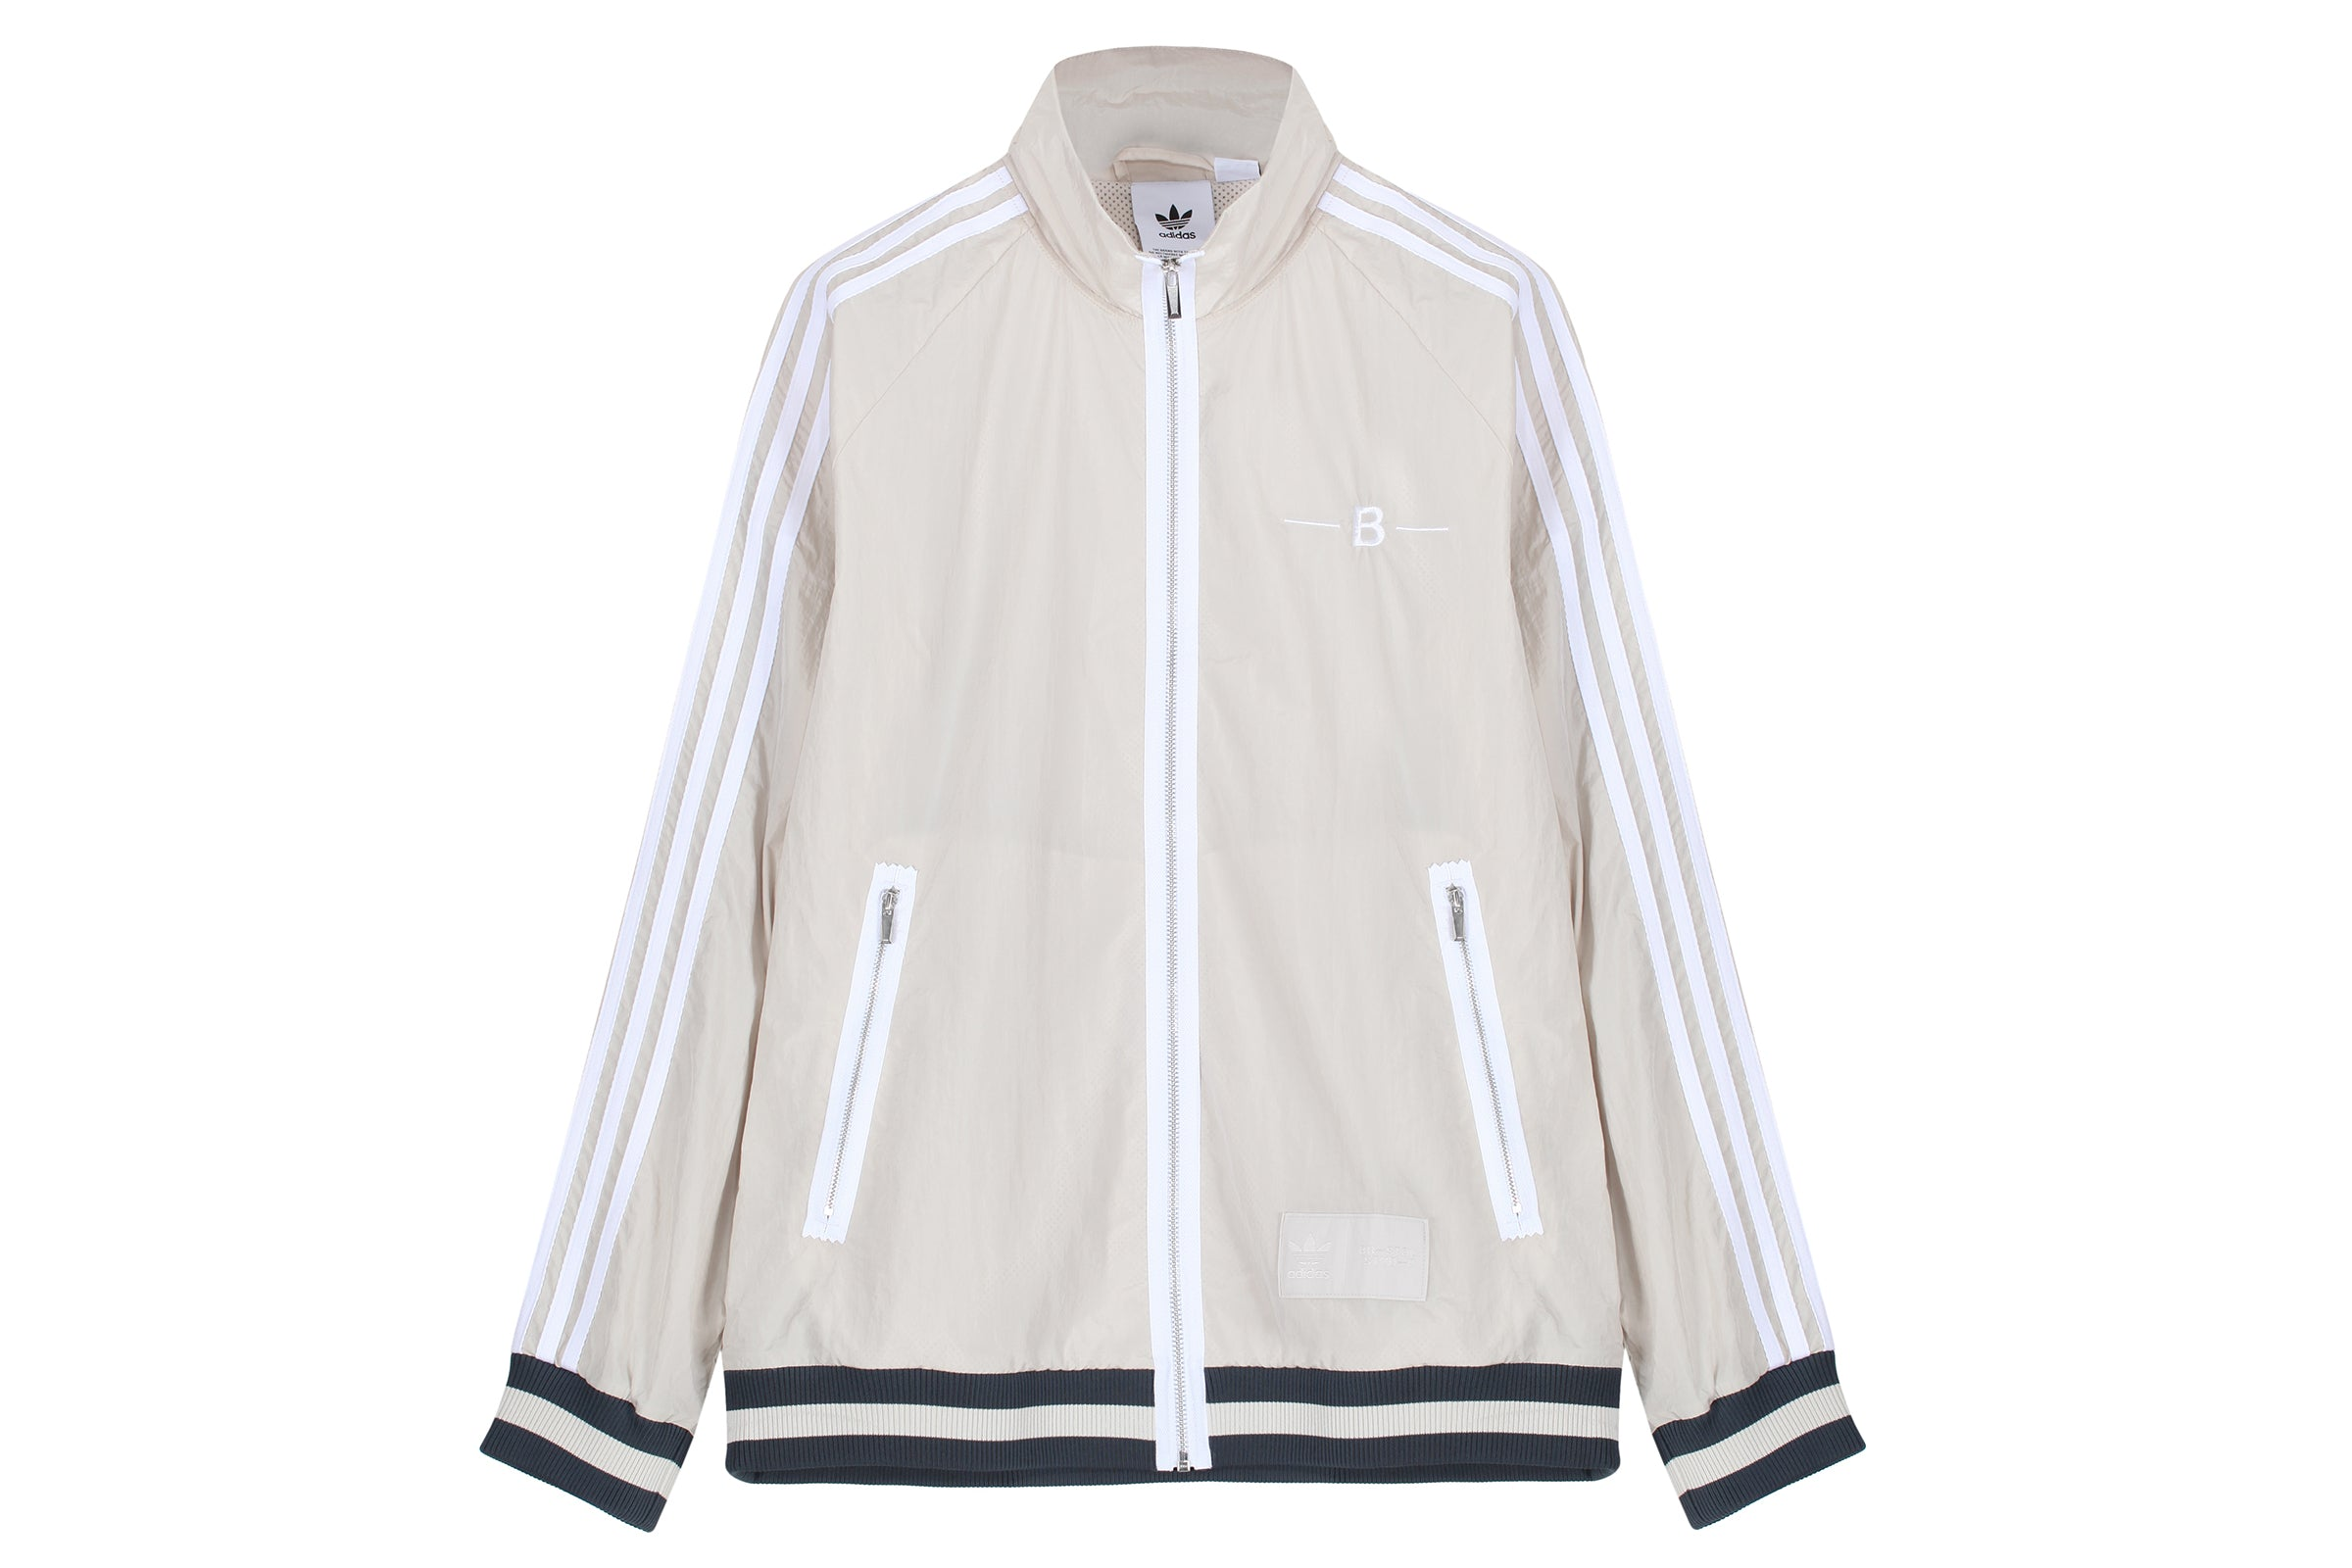 Adidas Warm Up Track Top x Bristol